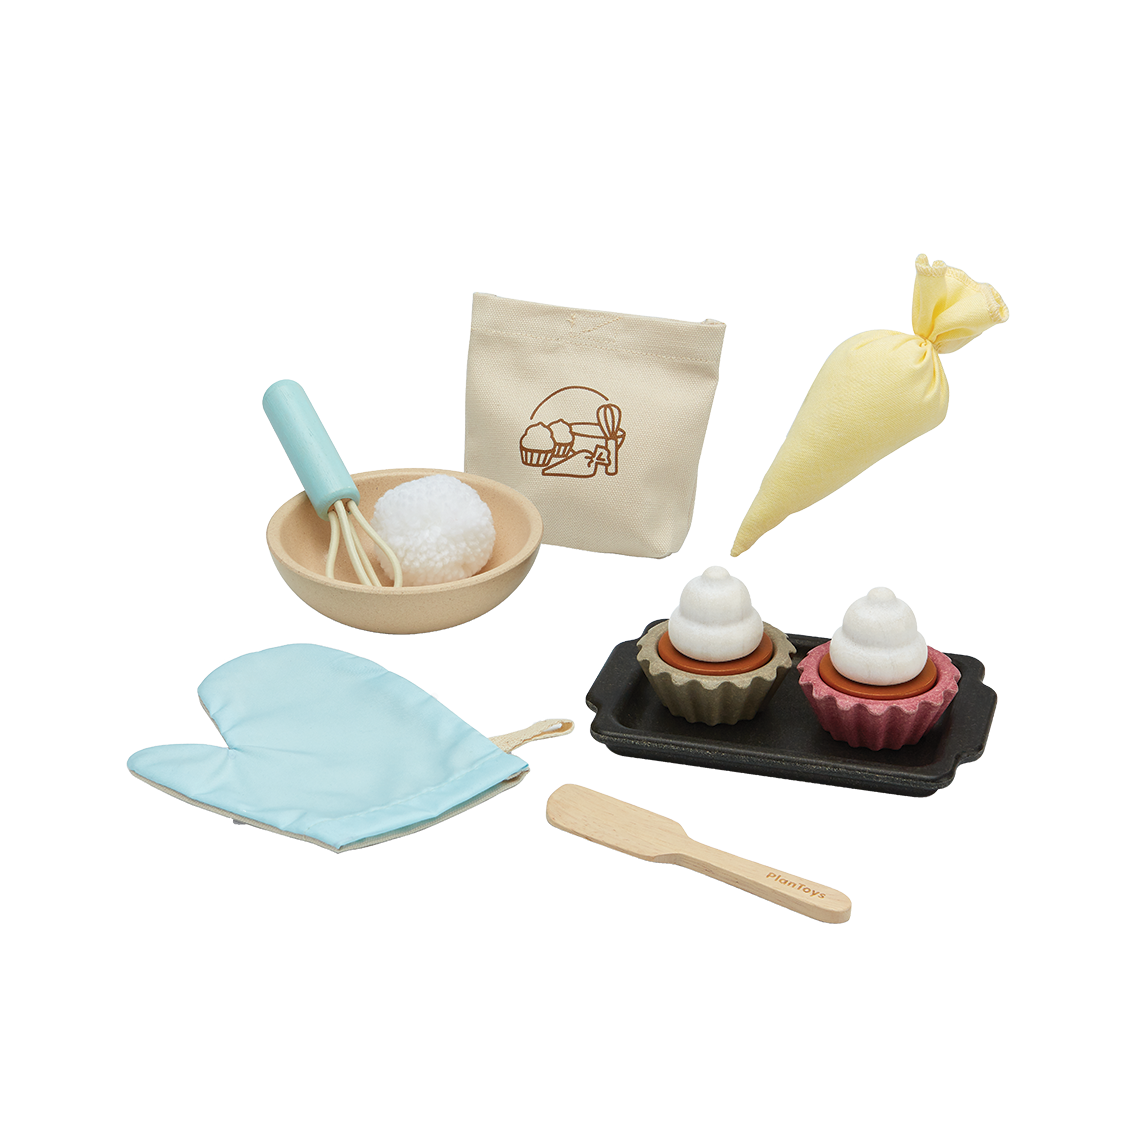 3626_PlanToys_CUPCAKE_SET_Pretend_Play_2yrs_Emotion_Imagination_Social_Coordination_Wooden_toys_Education_toys_Safety_Toys_Non-toxic_0.png